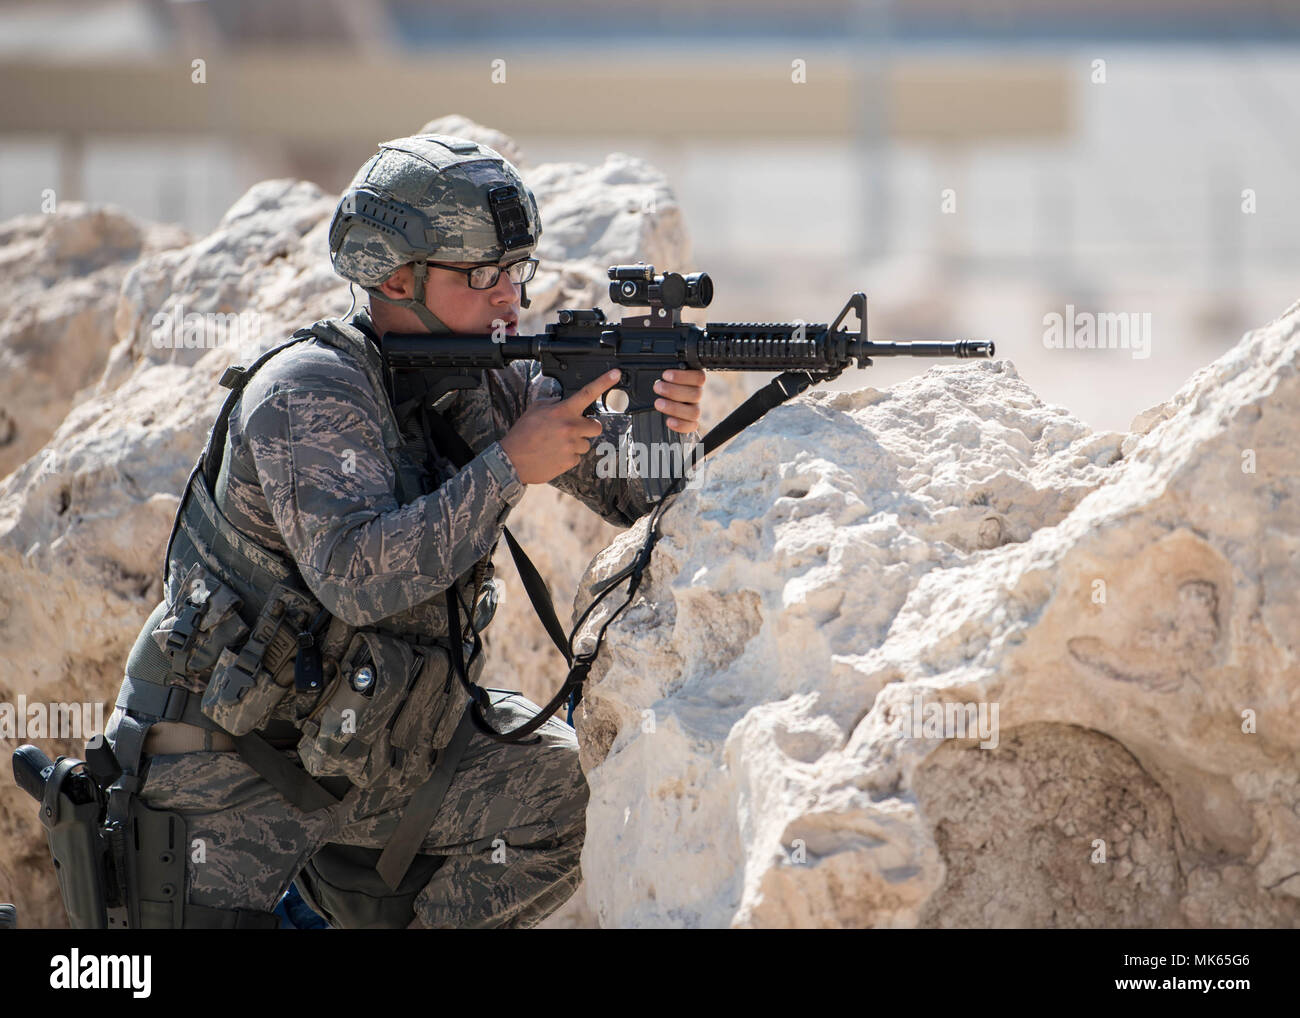 379th Expeditionary Stock Photos Images Mk Wiring Devices Qatar A Us Air Force Quick Reaction Member Assigned To The Security Forces Squadron